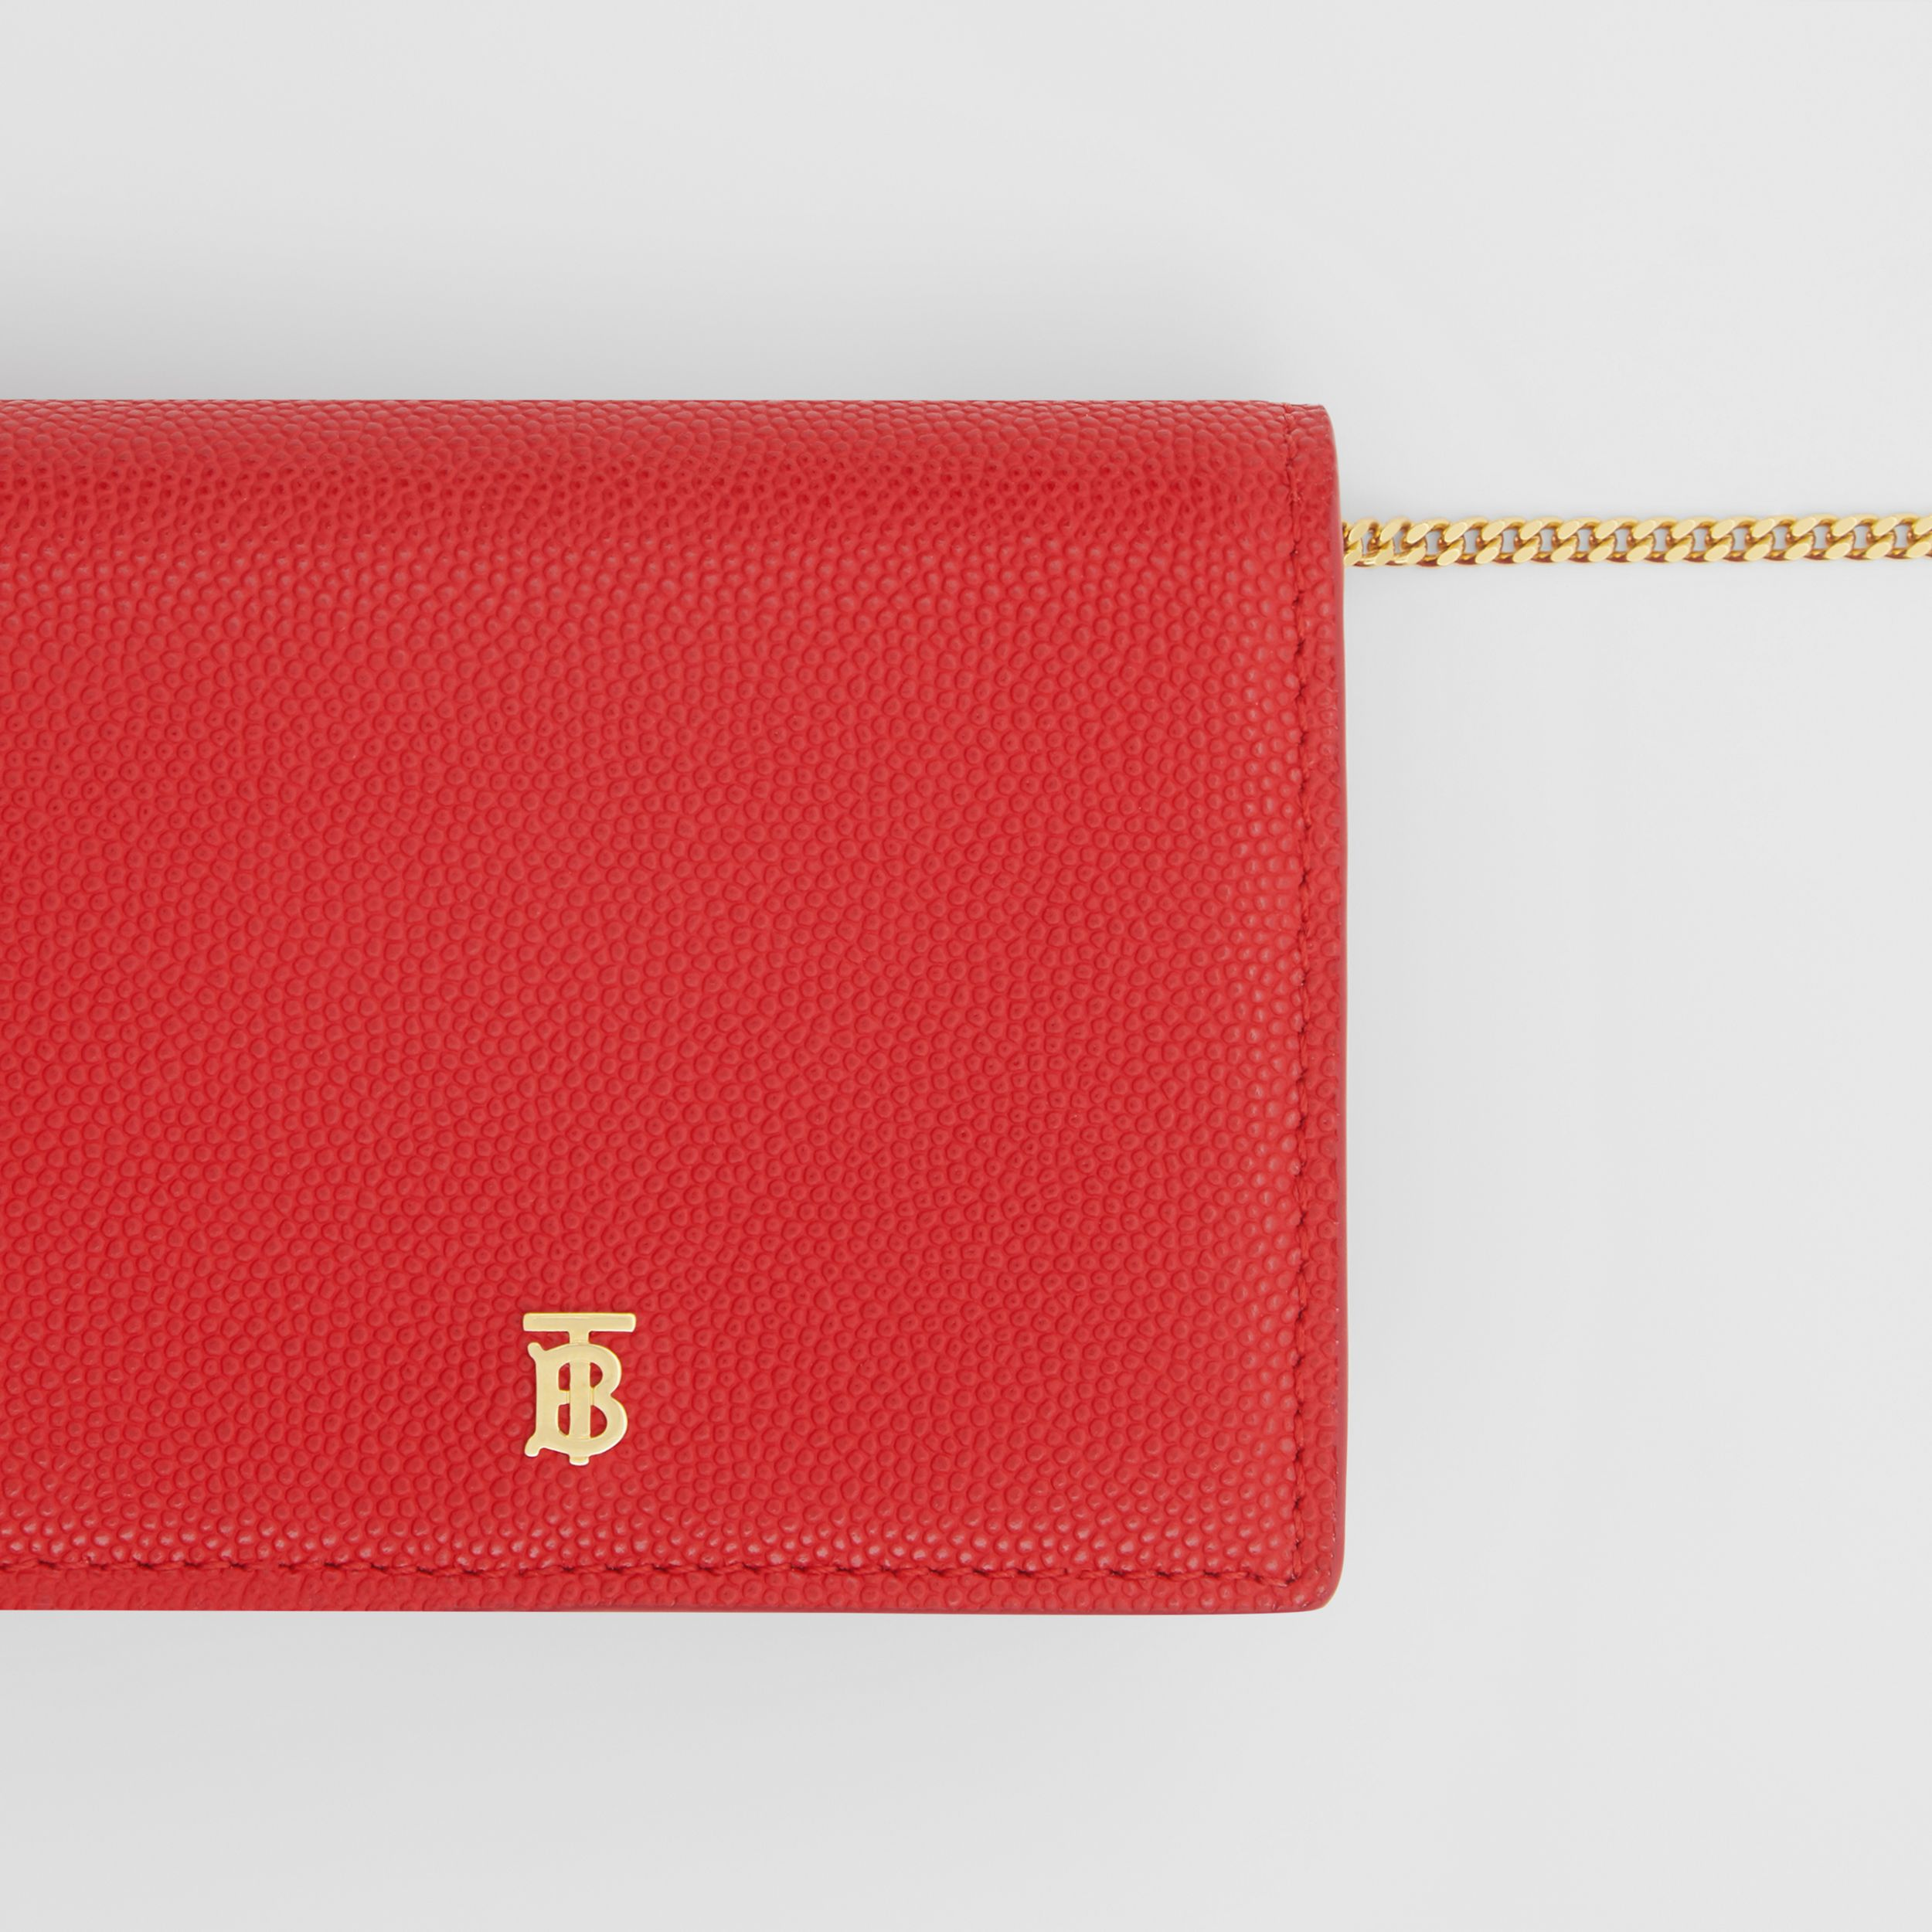 Grainy Leather Card Case with Detachable Strap in Bright Red - Women | Burberry Hong Kong S.A.R. - 2